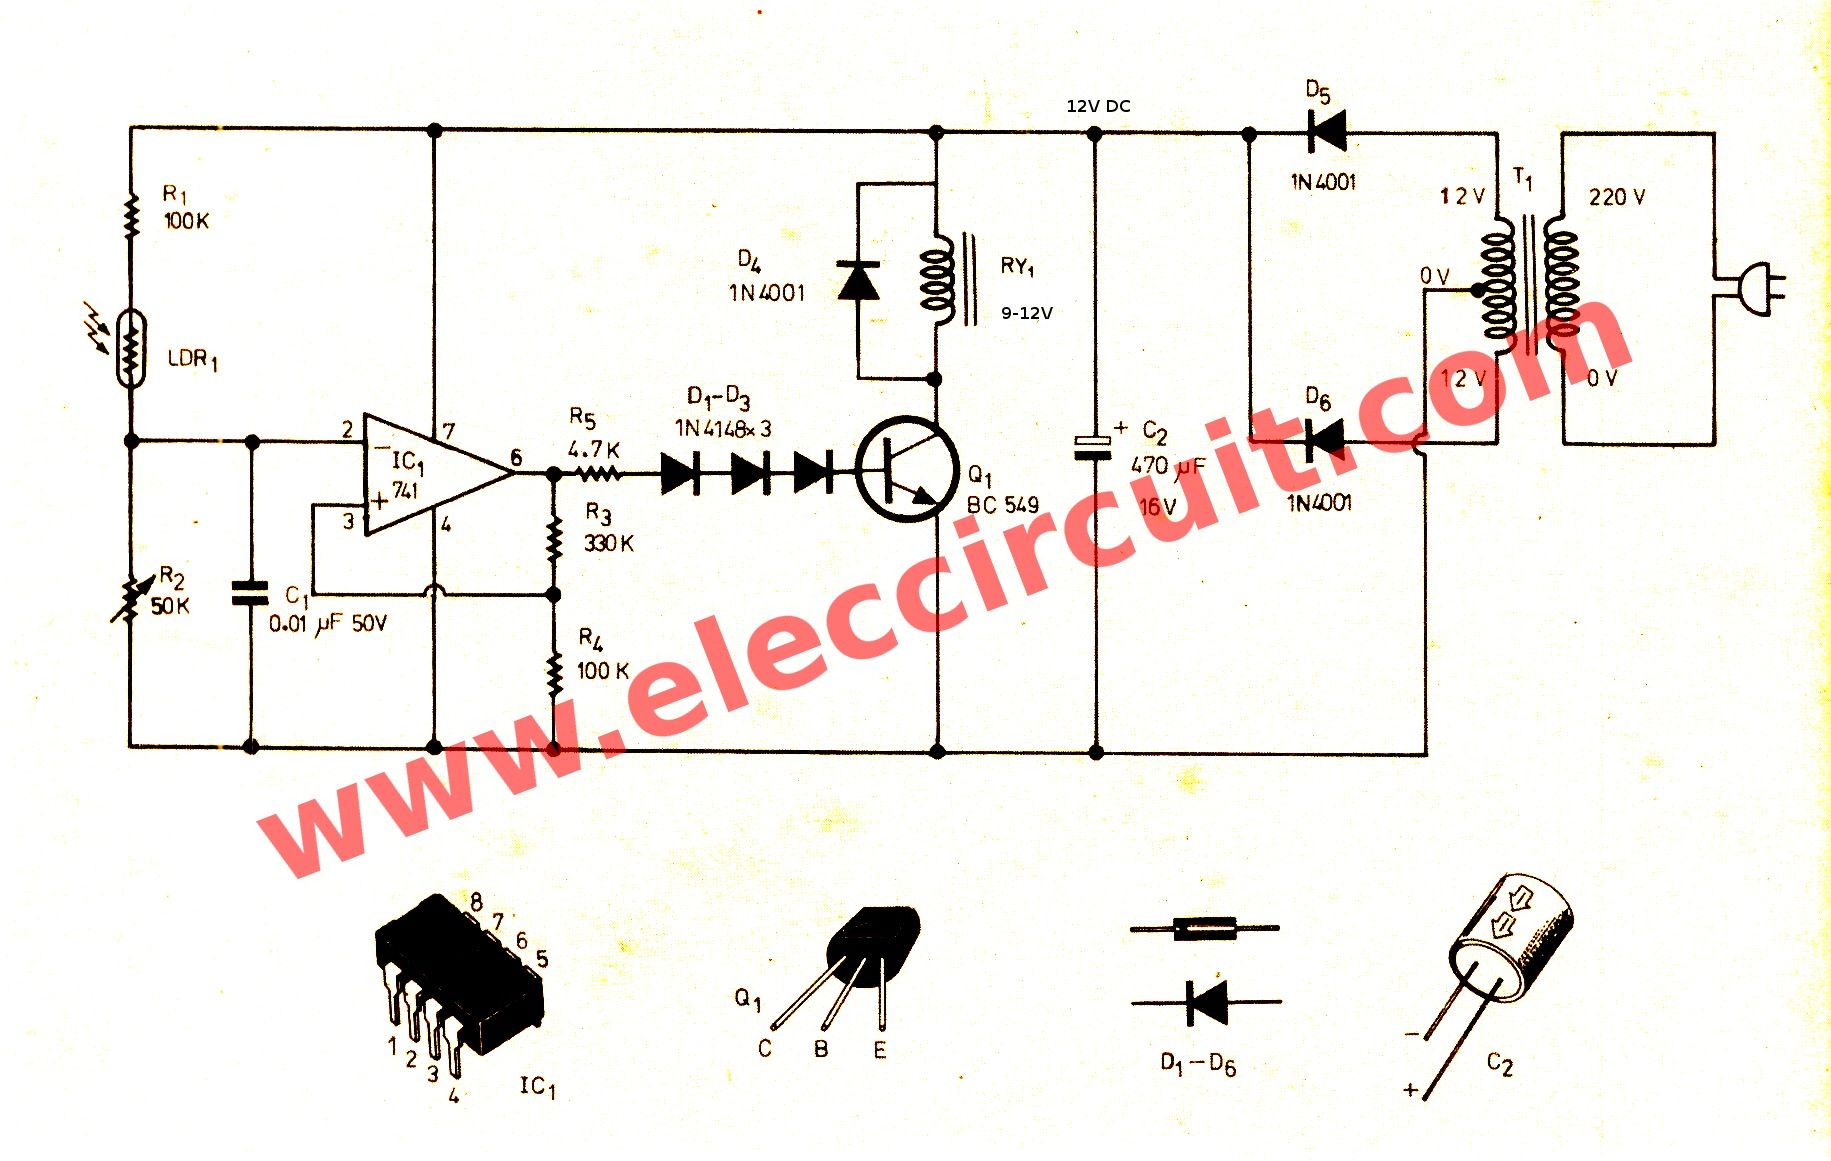 Automatic night light switch using 741 op ampg 18311161 lets to see automatic op amp night light circuit using it is also very simple as my feelings it has high sensitivity more than onehigh accuracy pooptronica Images